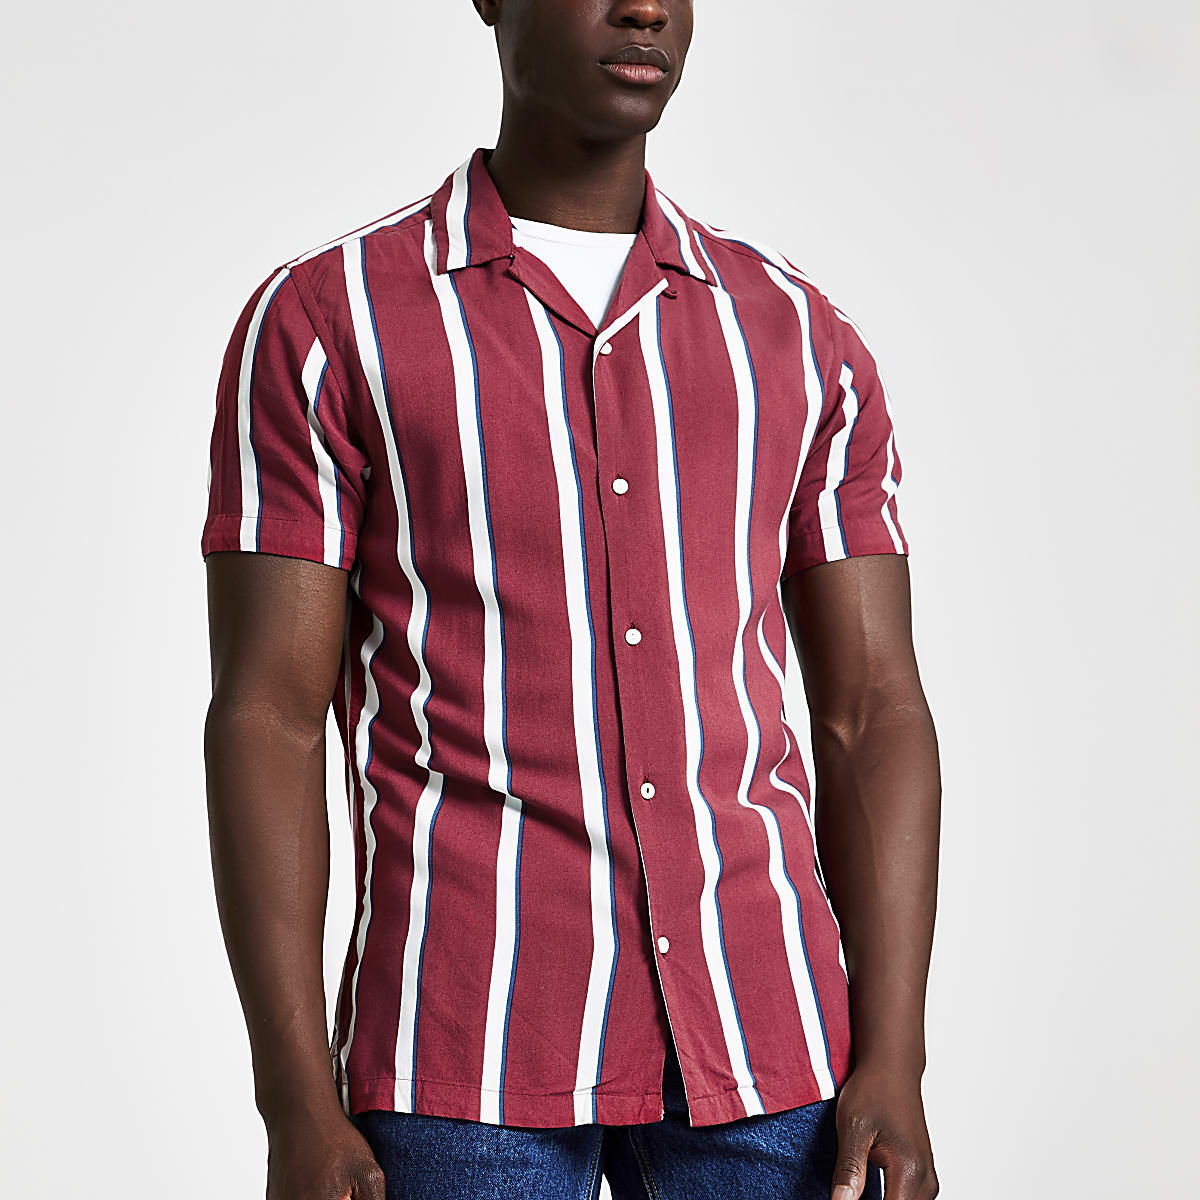 Jack and Jones red stripe short sleeve shirt